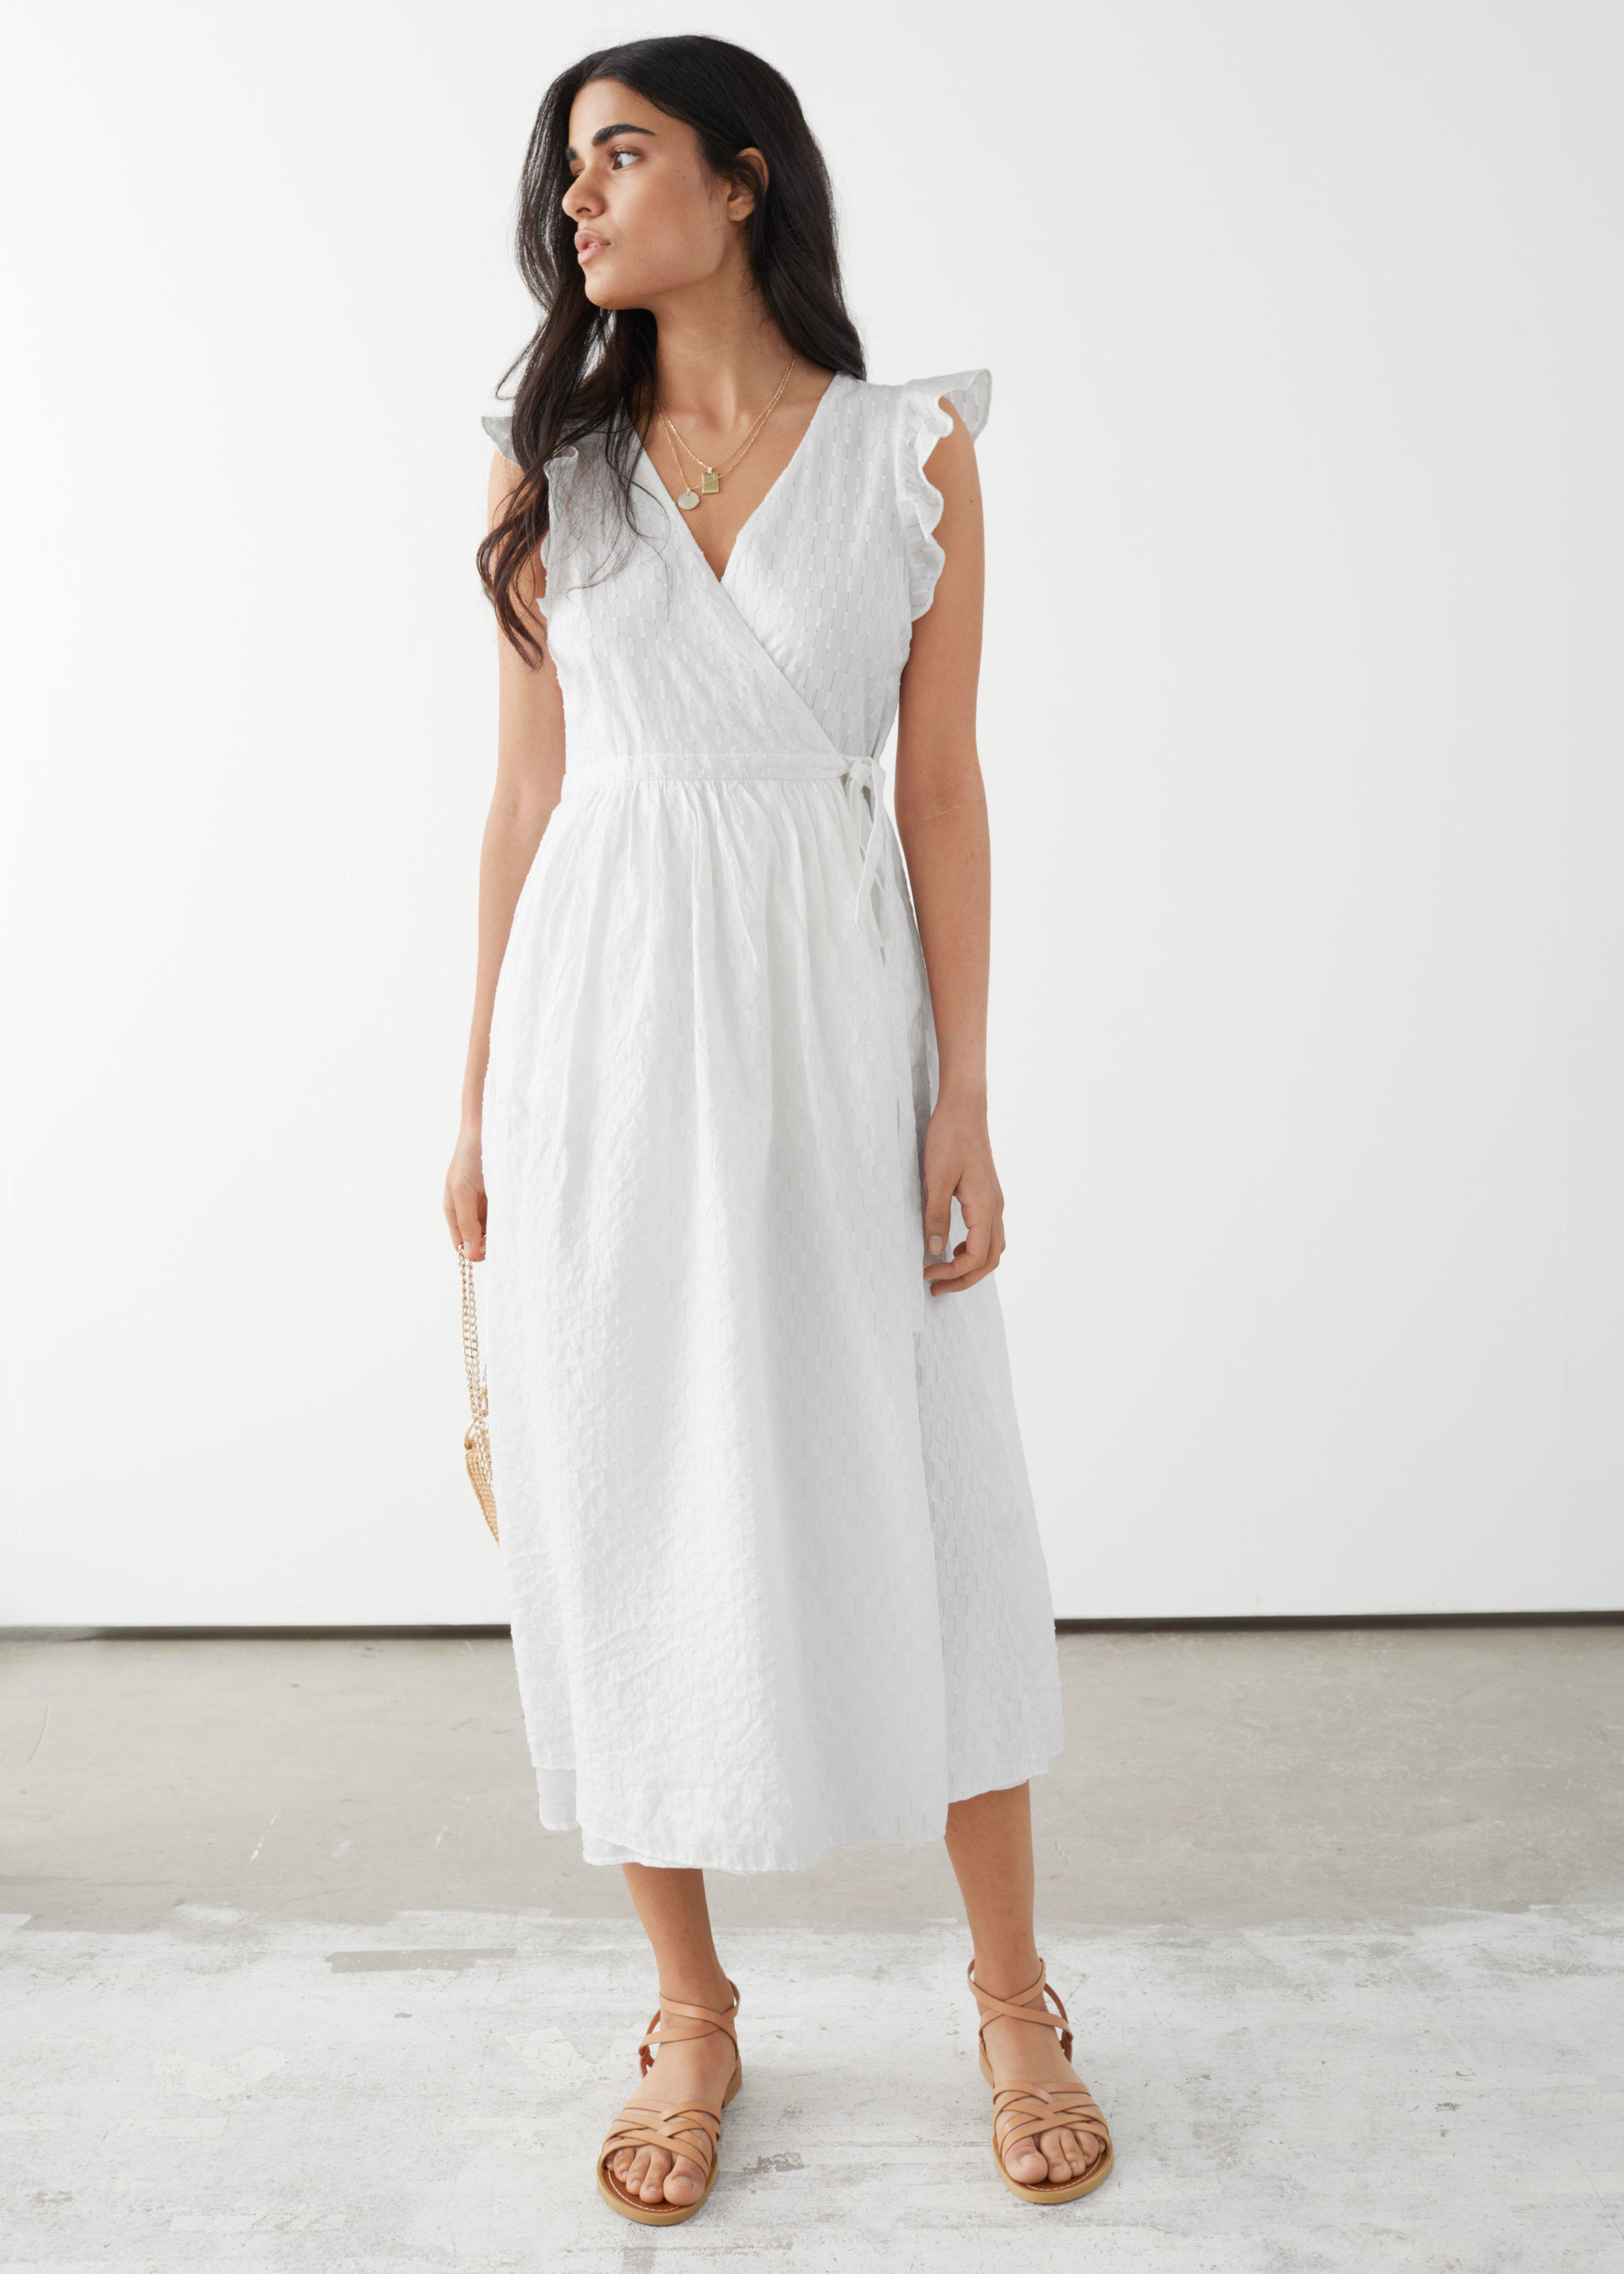 model wearing white wrap midi dress